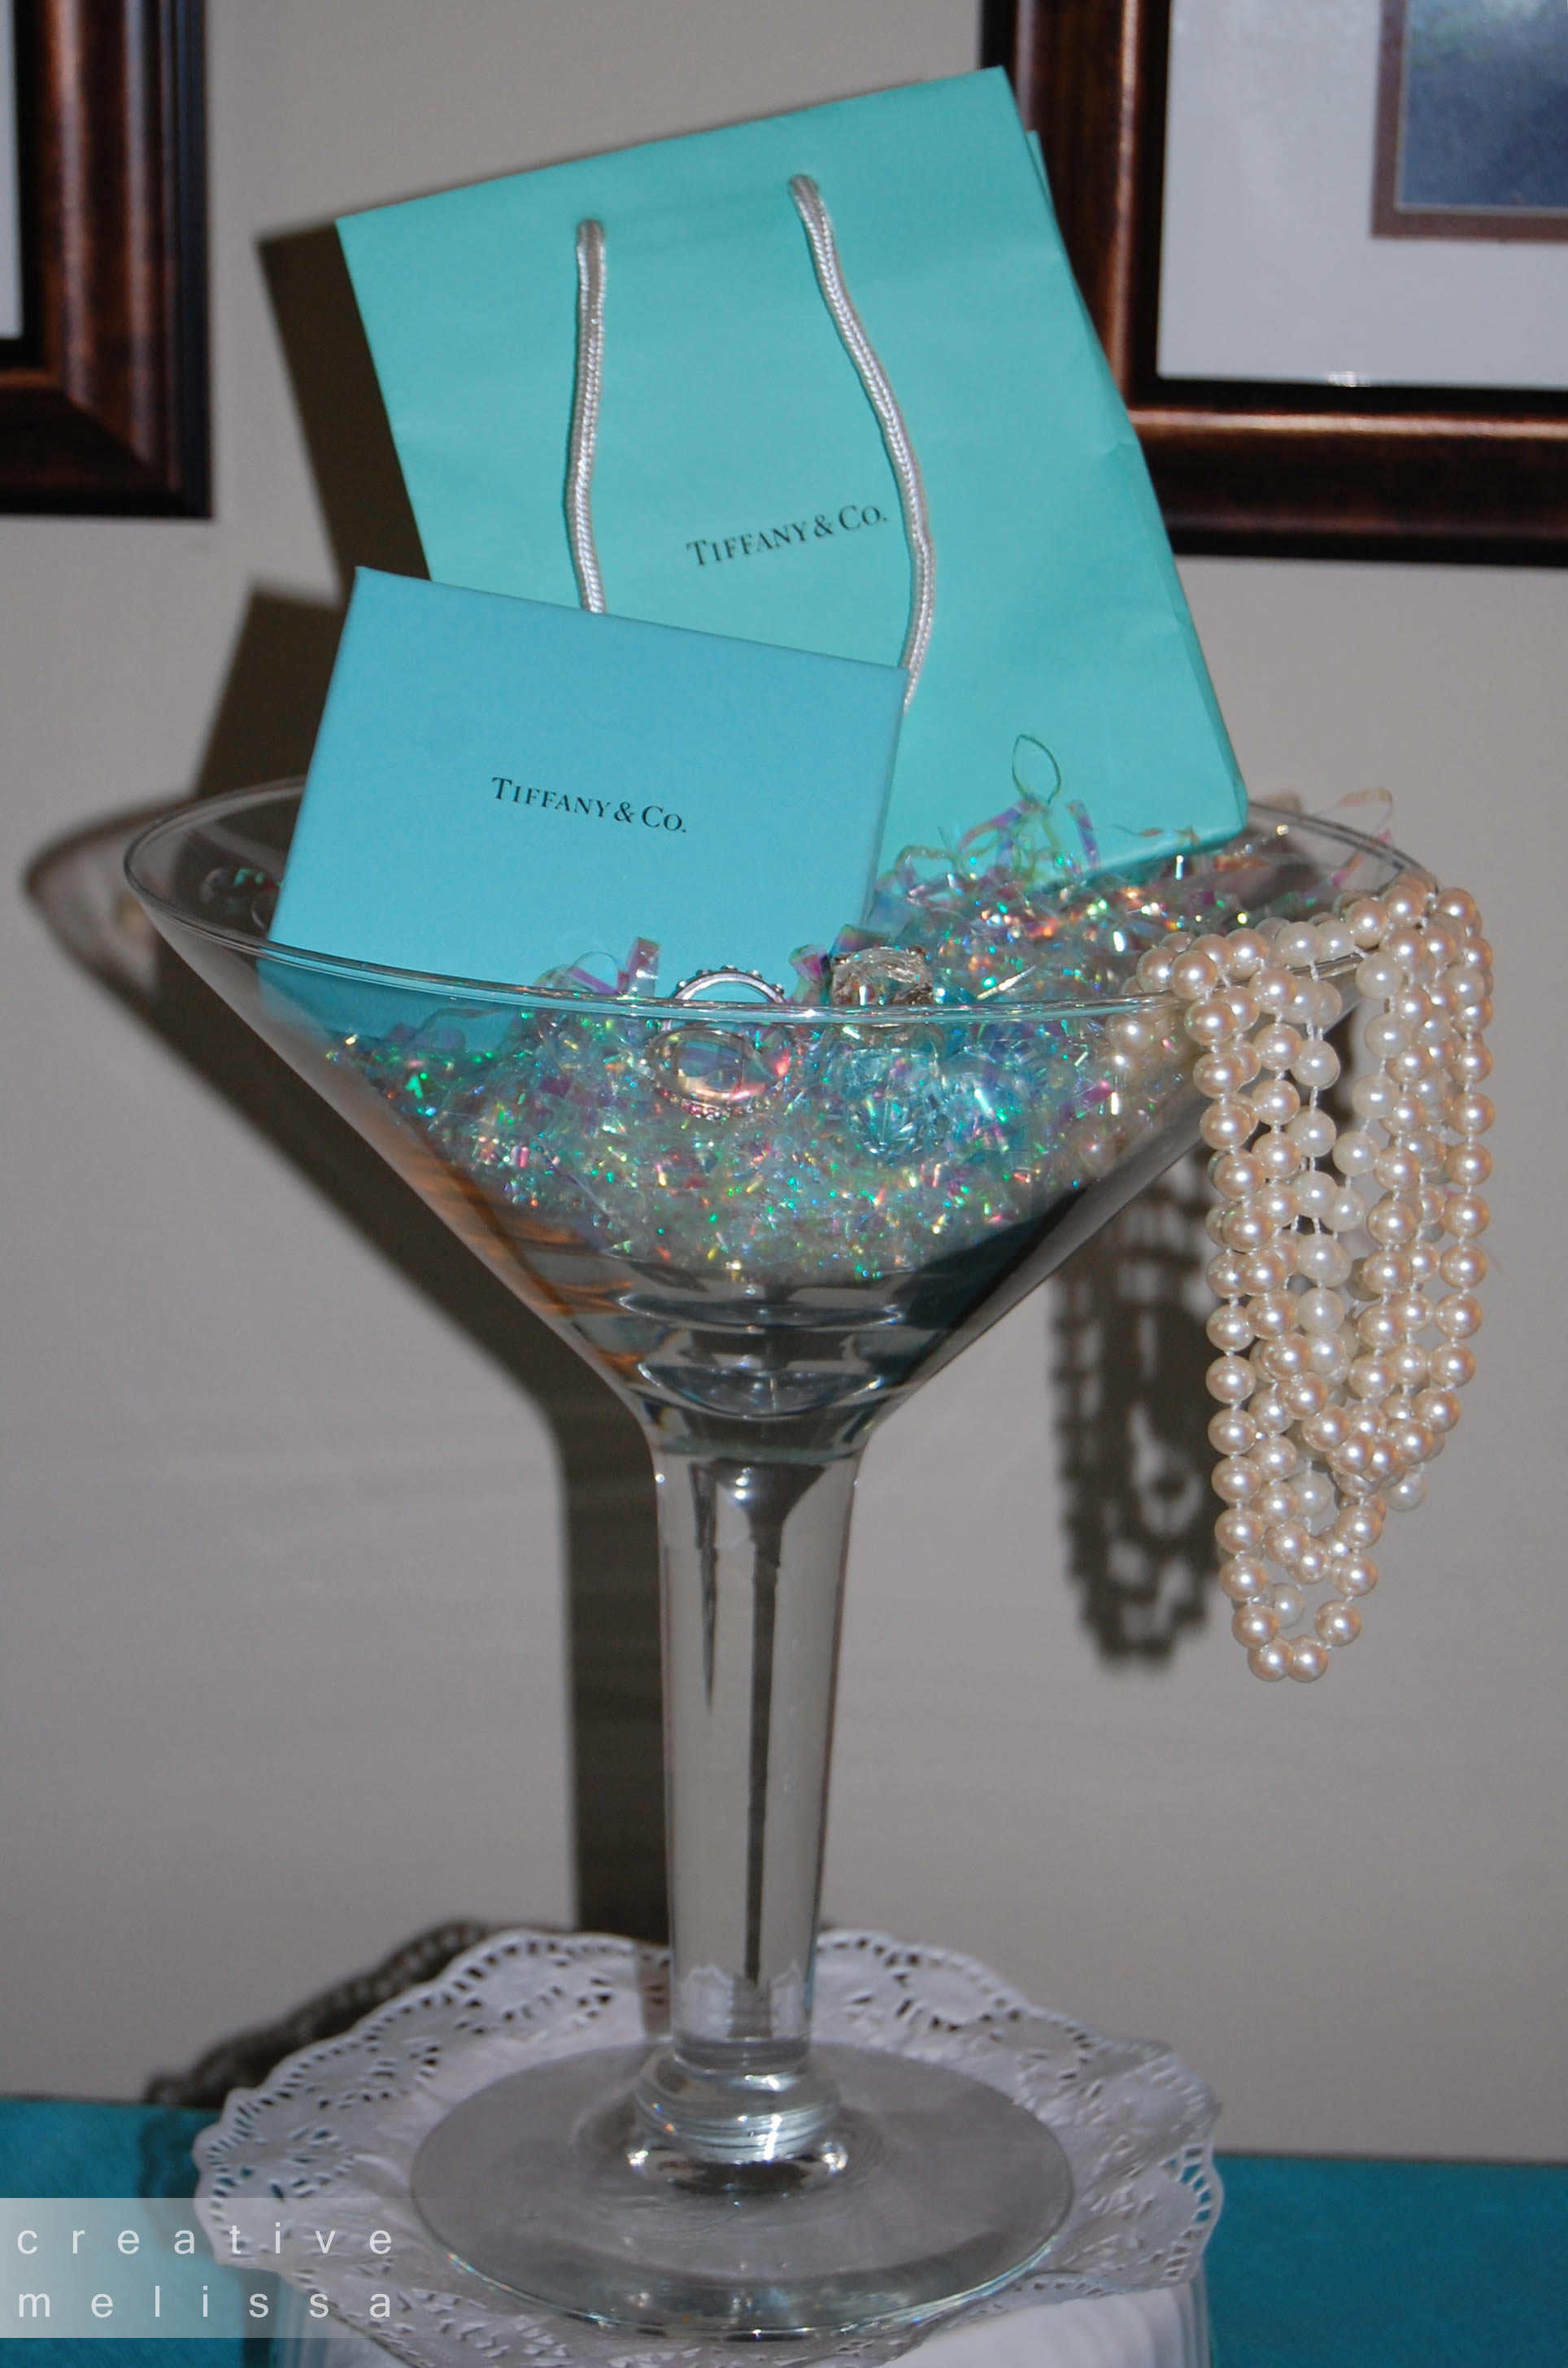 Table Centerpiece for Tiffany wedding Shower Brunch - Creative Melissa Designs